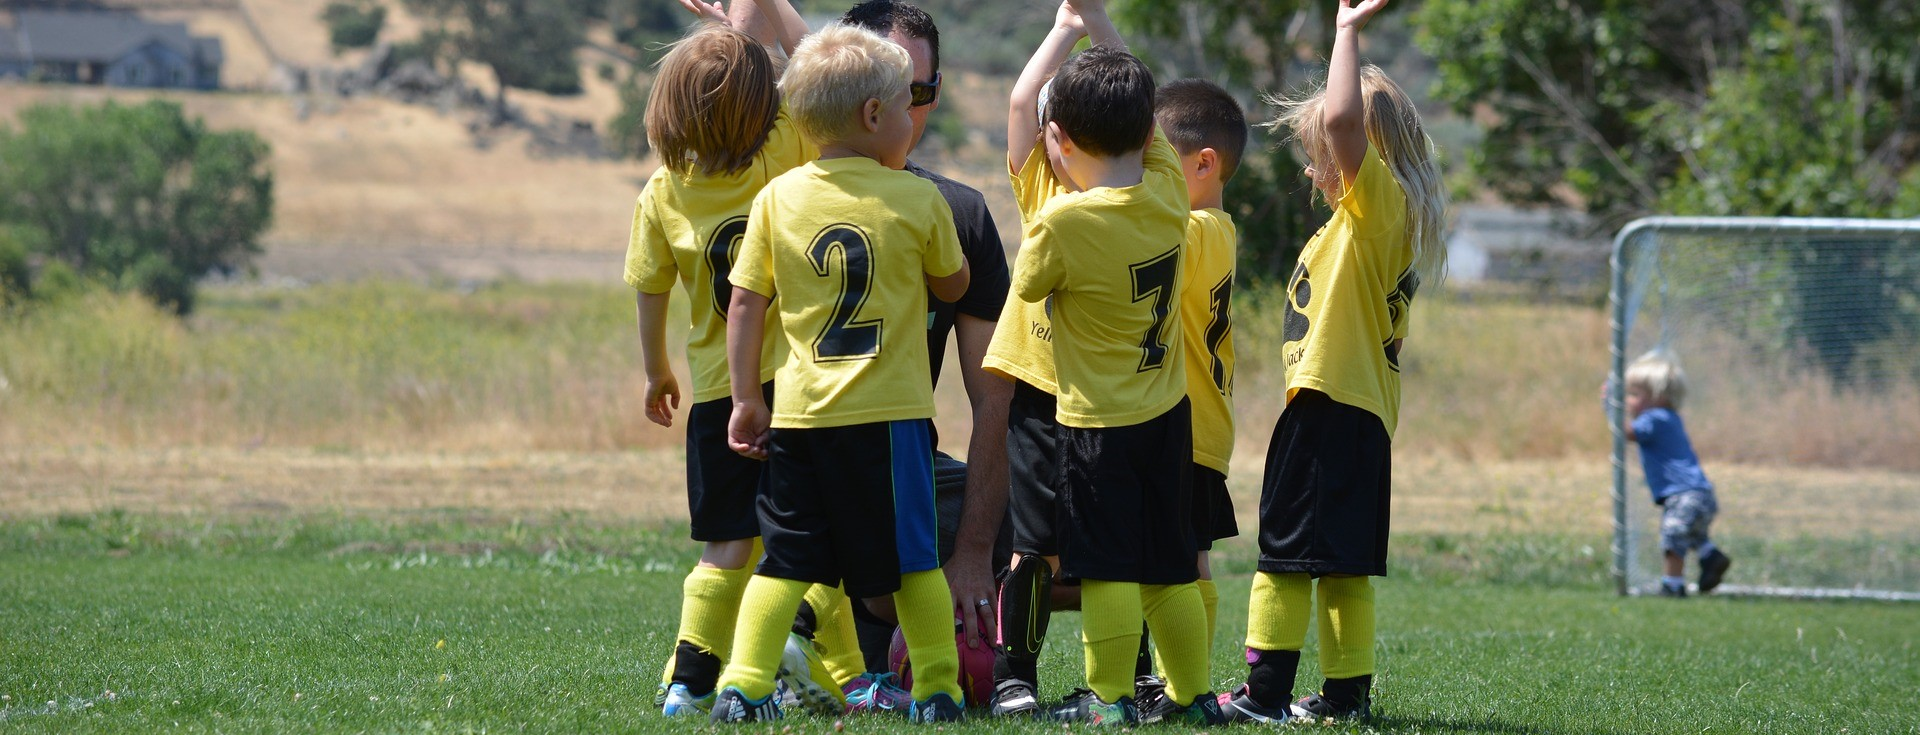 Kids Teaming up for a Soccer Game in South Dakota | Kids Car Donations